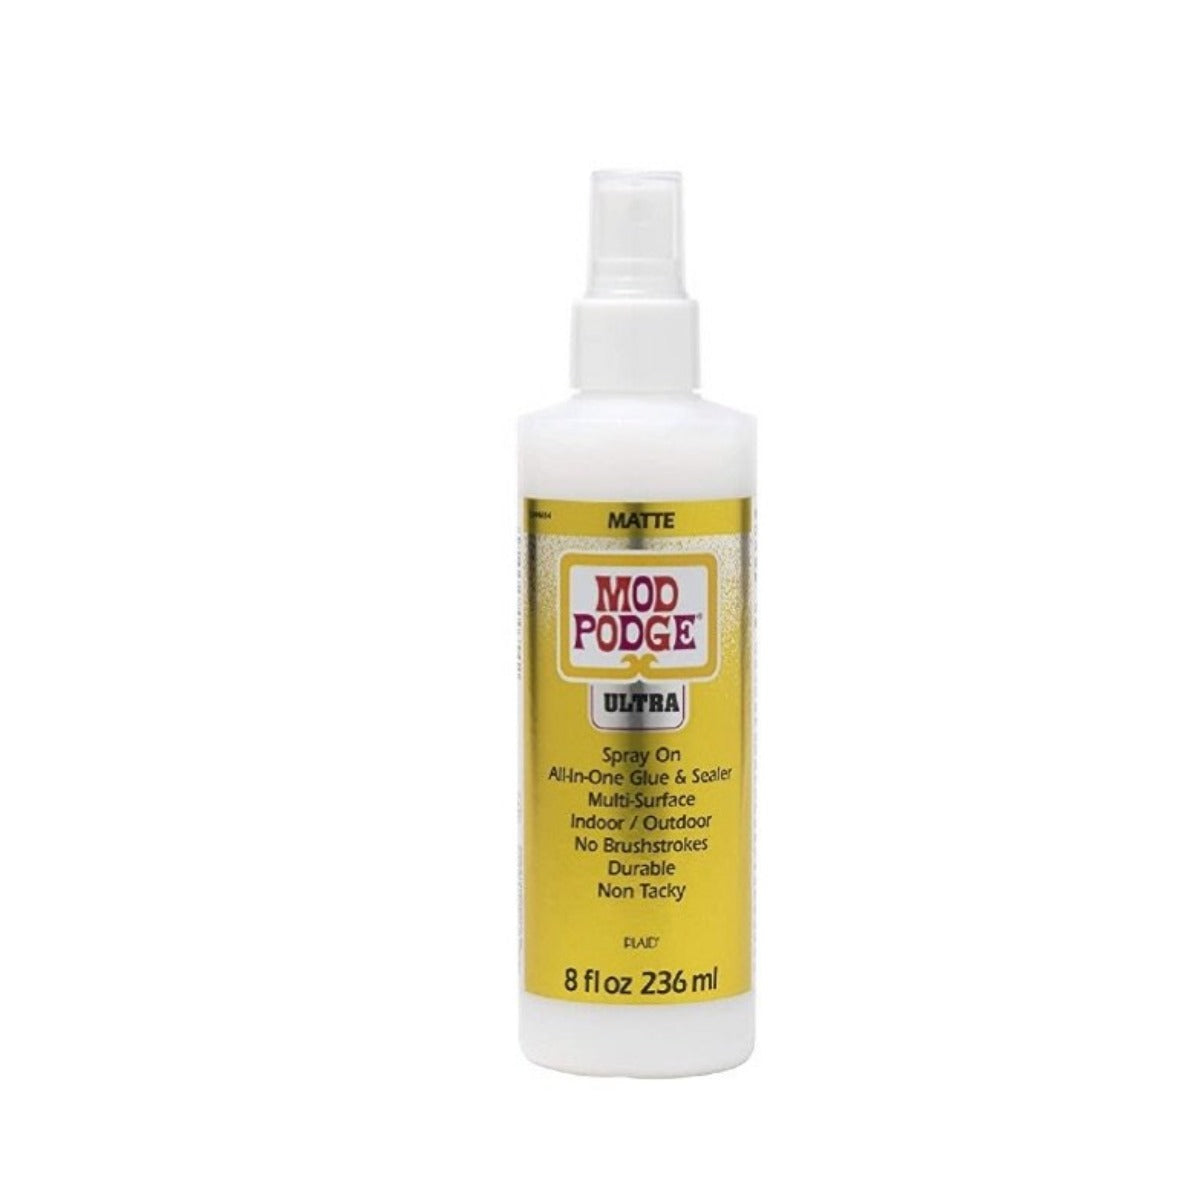 Supplies -Mod Podge Matte Spray on all in one Glue & Sealer